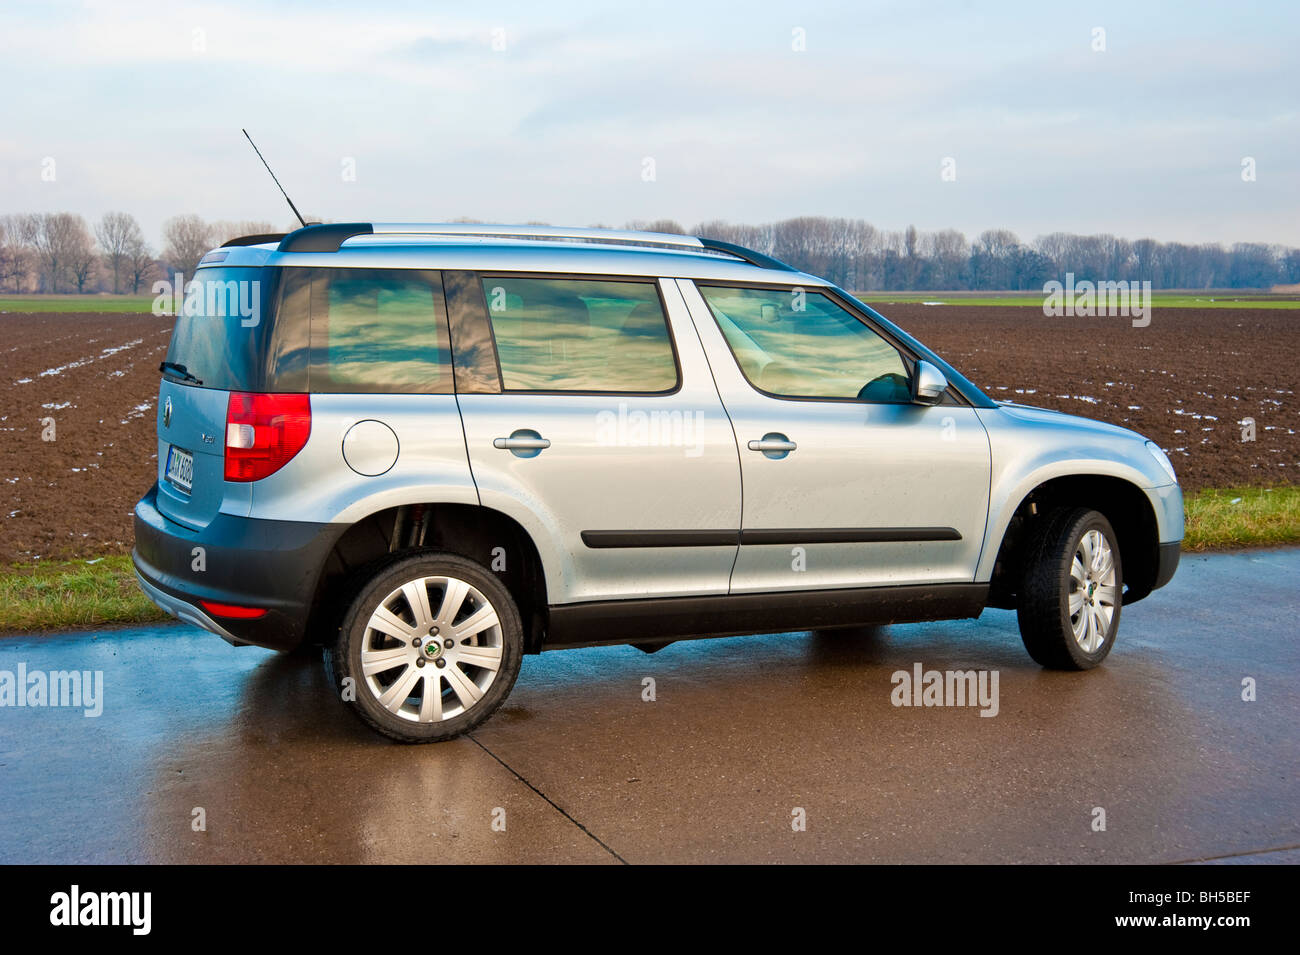 Rear, side view Skoda Yeti crossover SUV, 2010 model in light blue metallic parked on a street next to a field - Stock Image